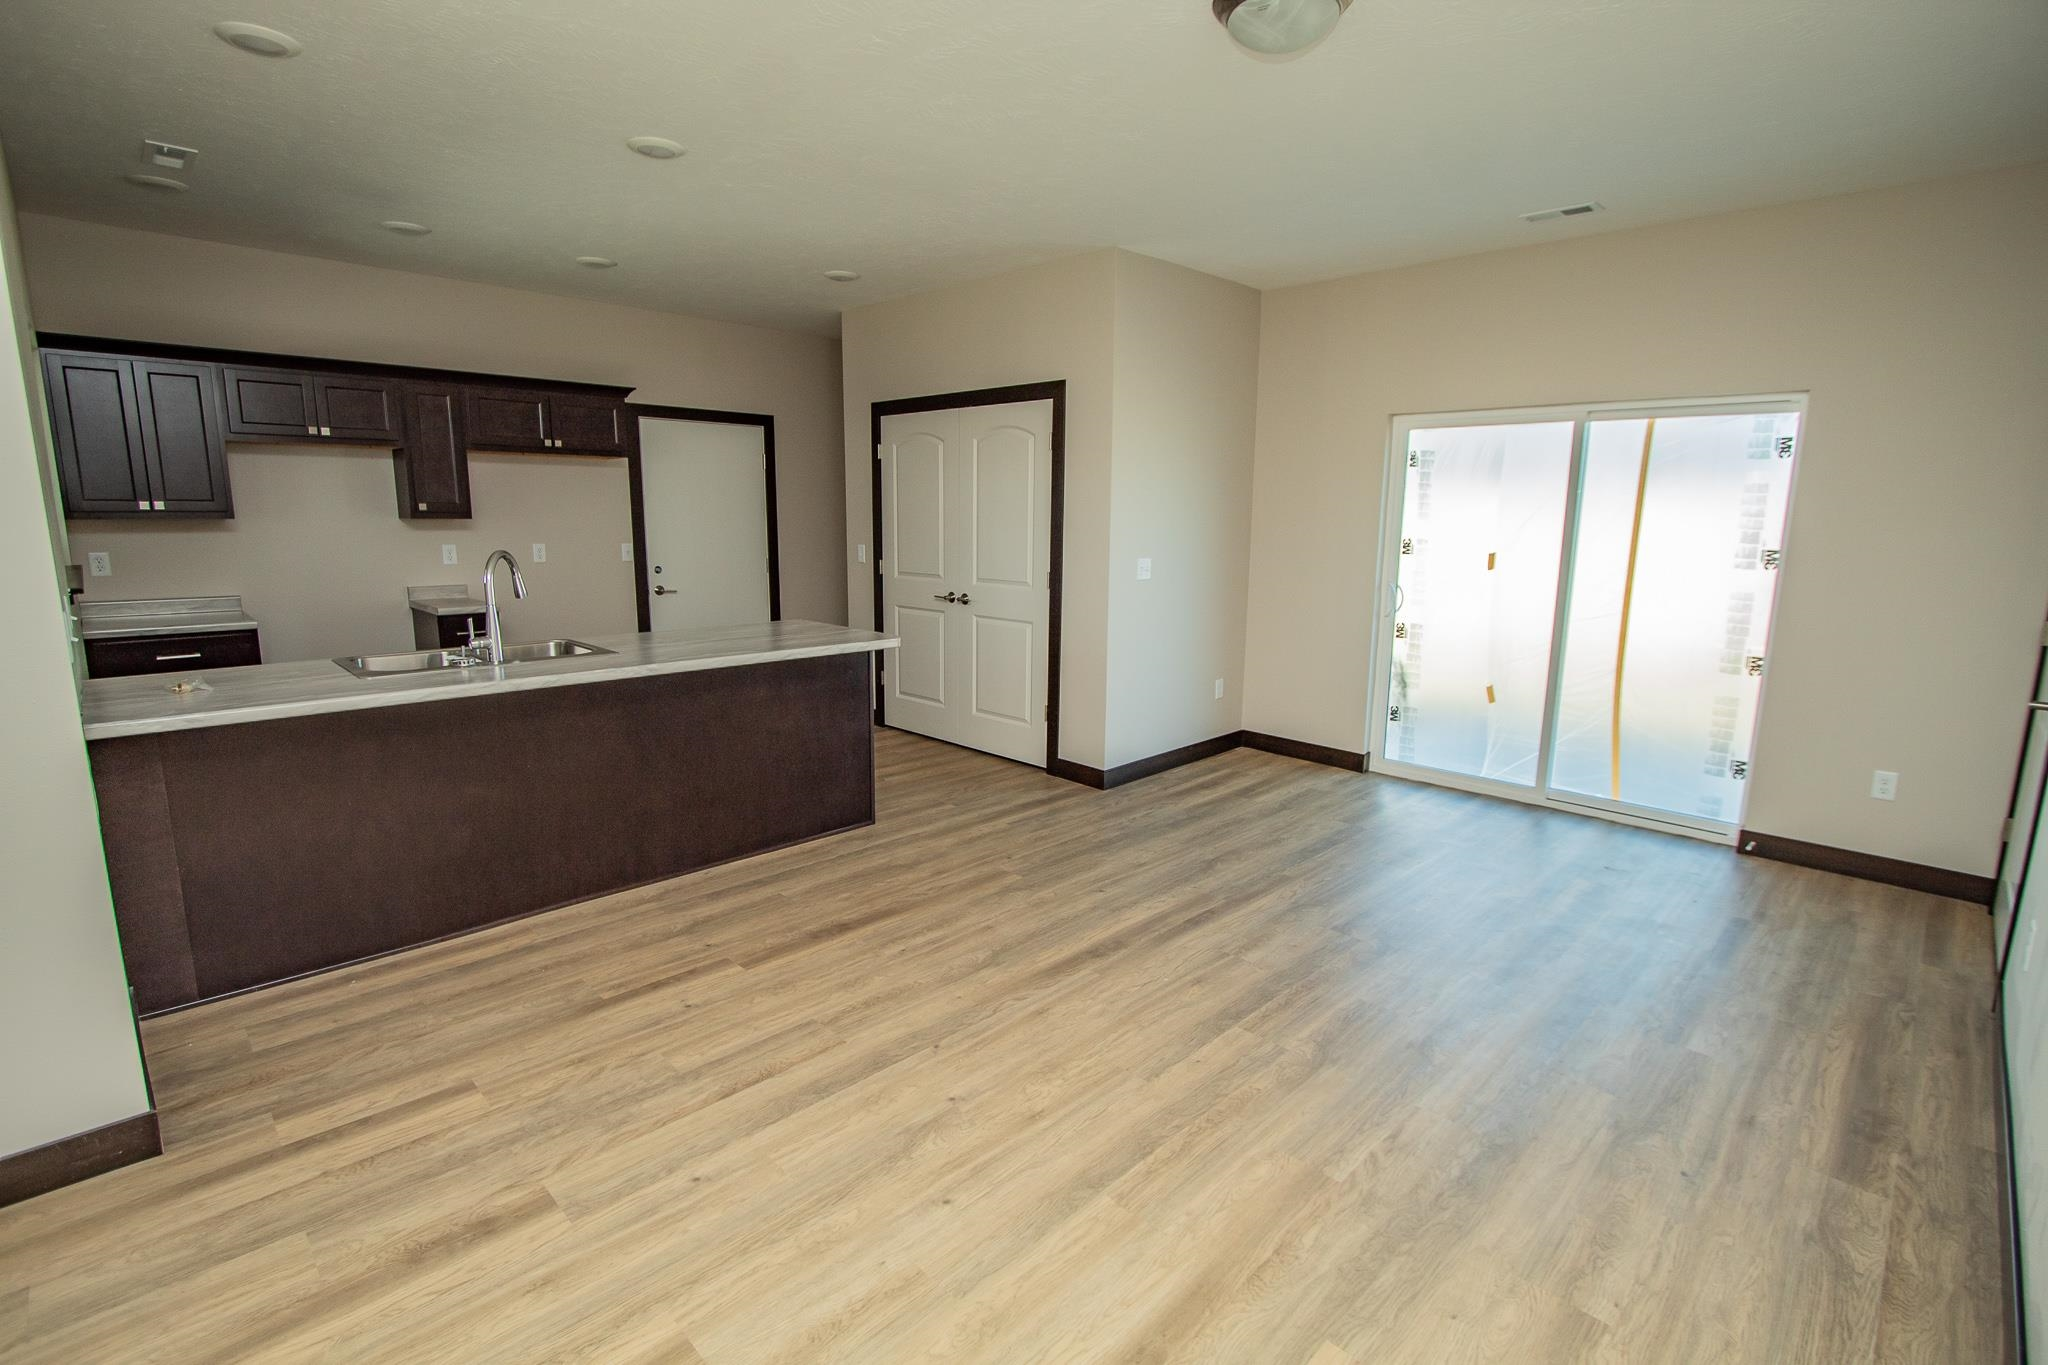 Homes For Sale at Parks St.